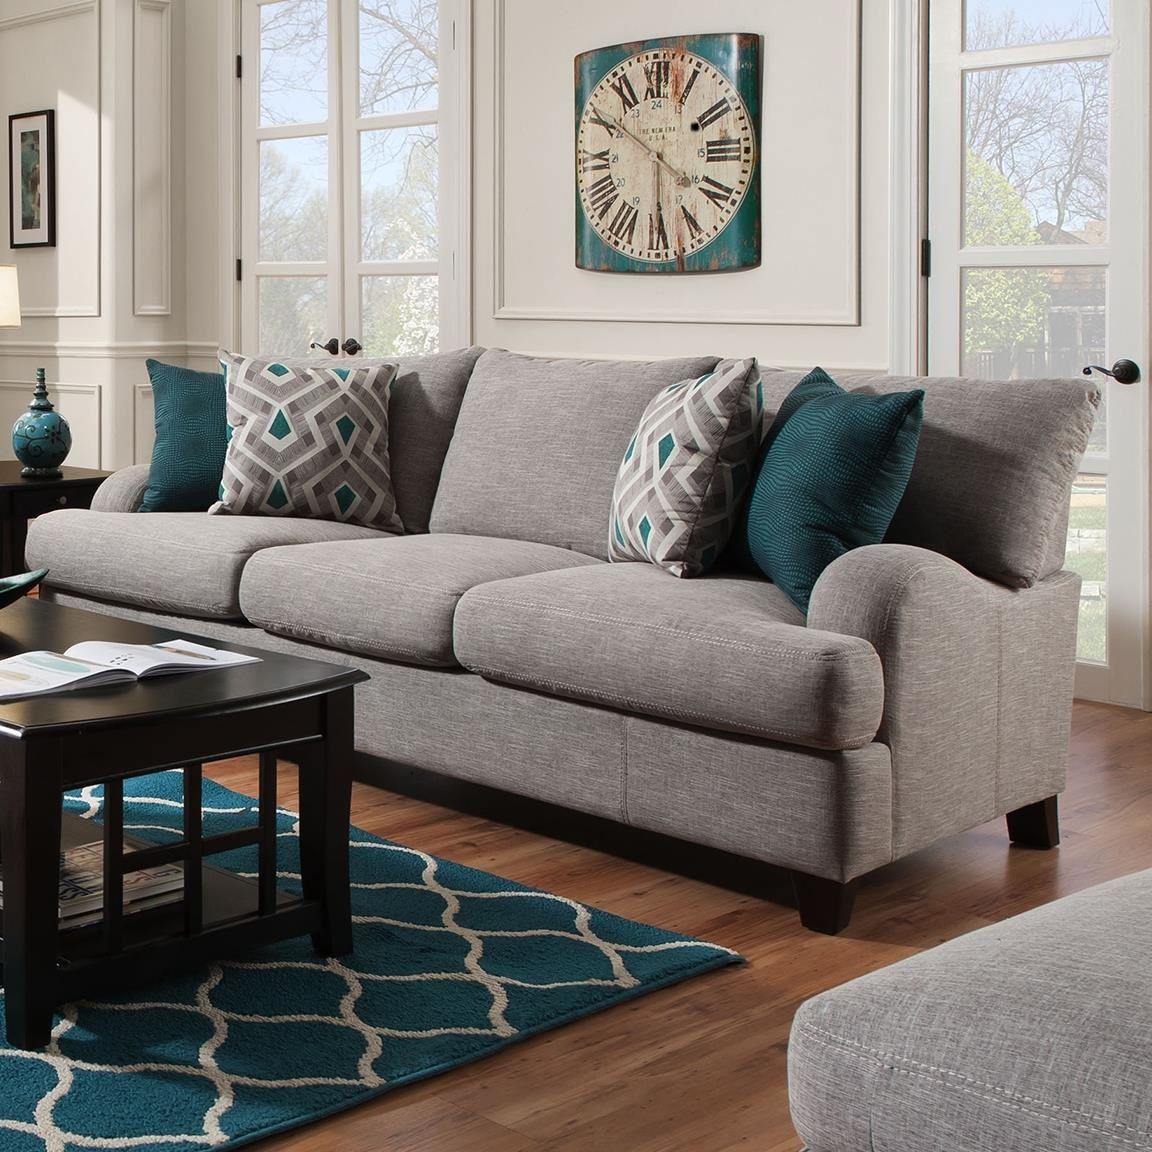 Franklin Paradigm Sofa With Bold Accent Pillows | Miskelly Furniture | Sofas